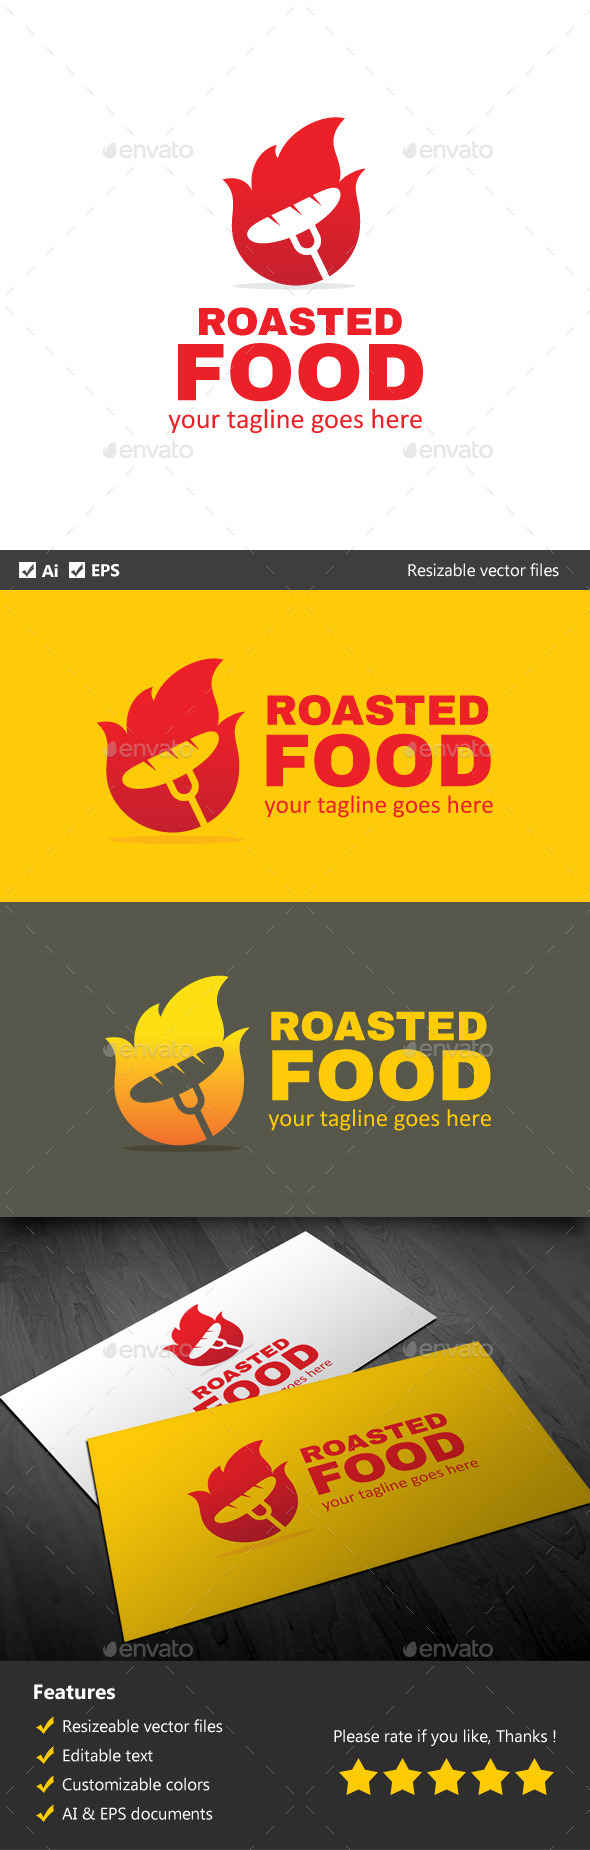 GraphicRiver Roasted Food 9920292